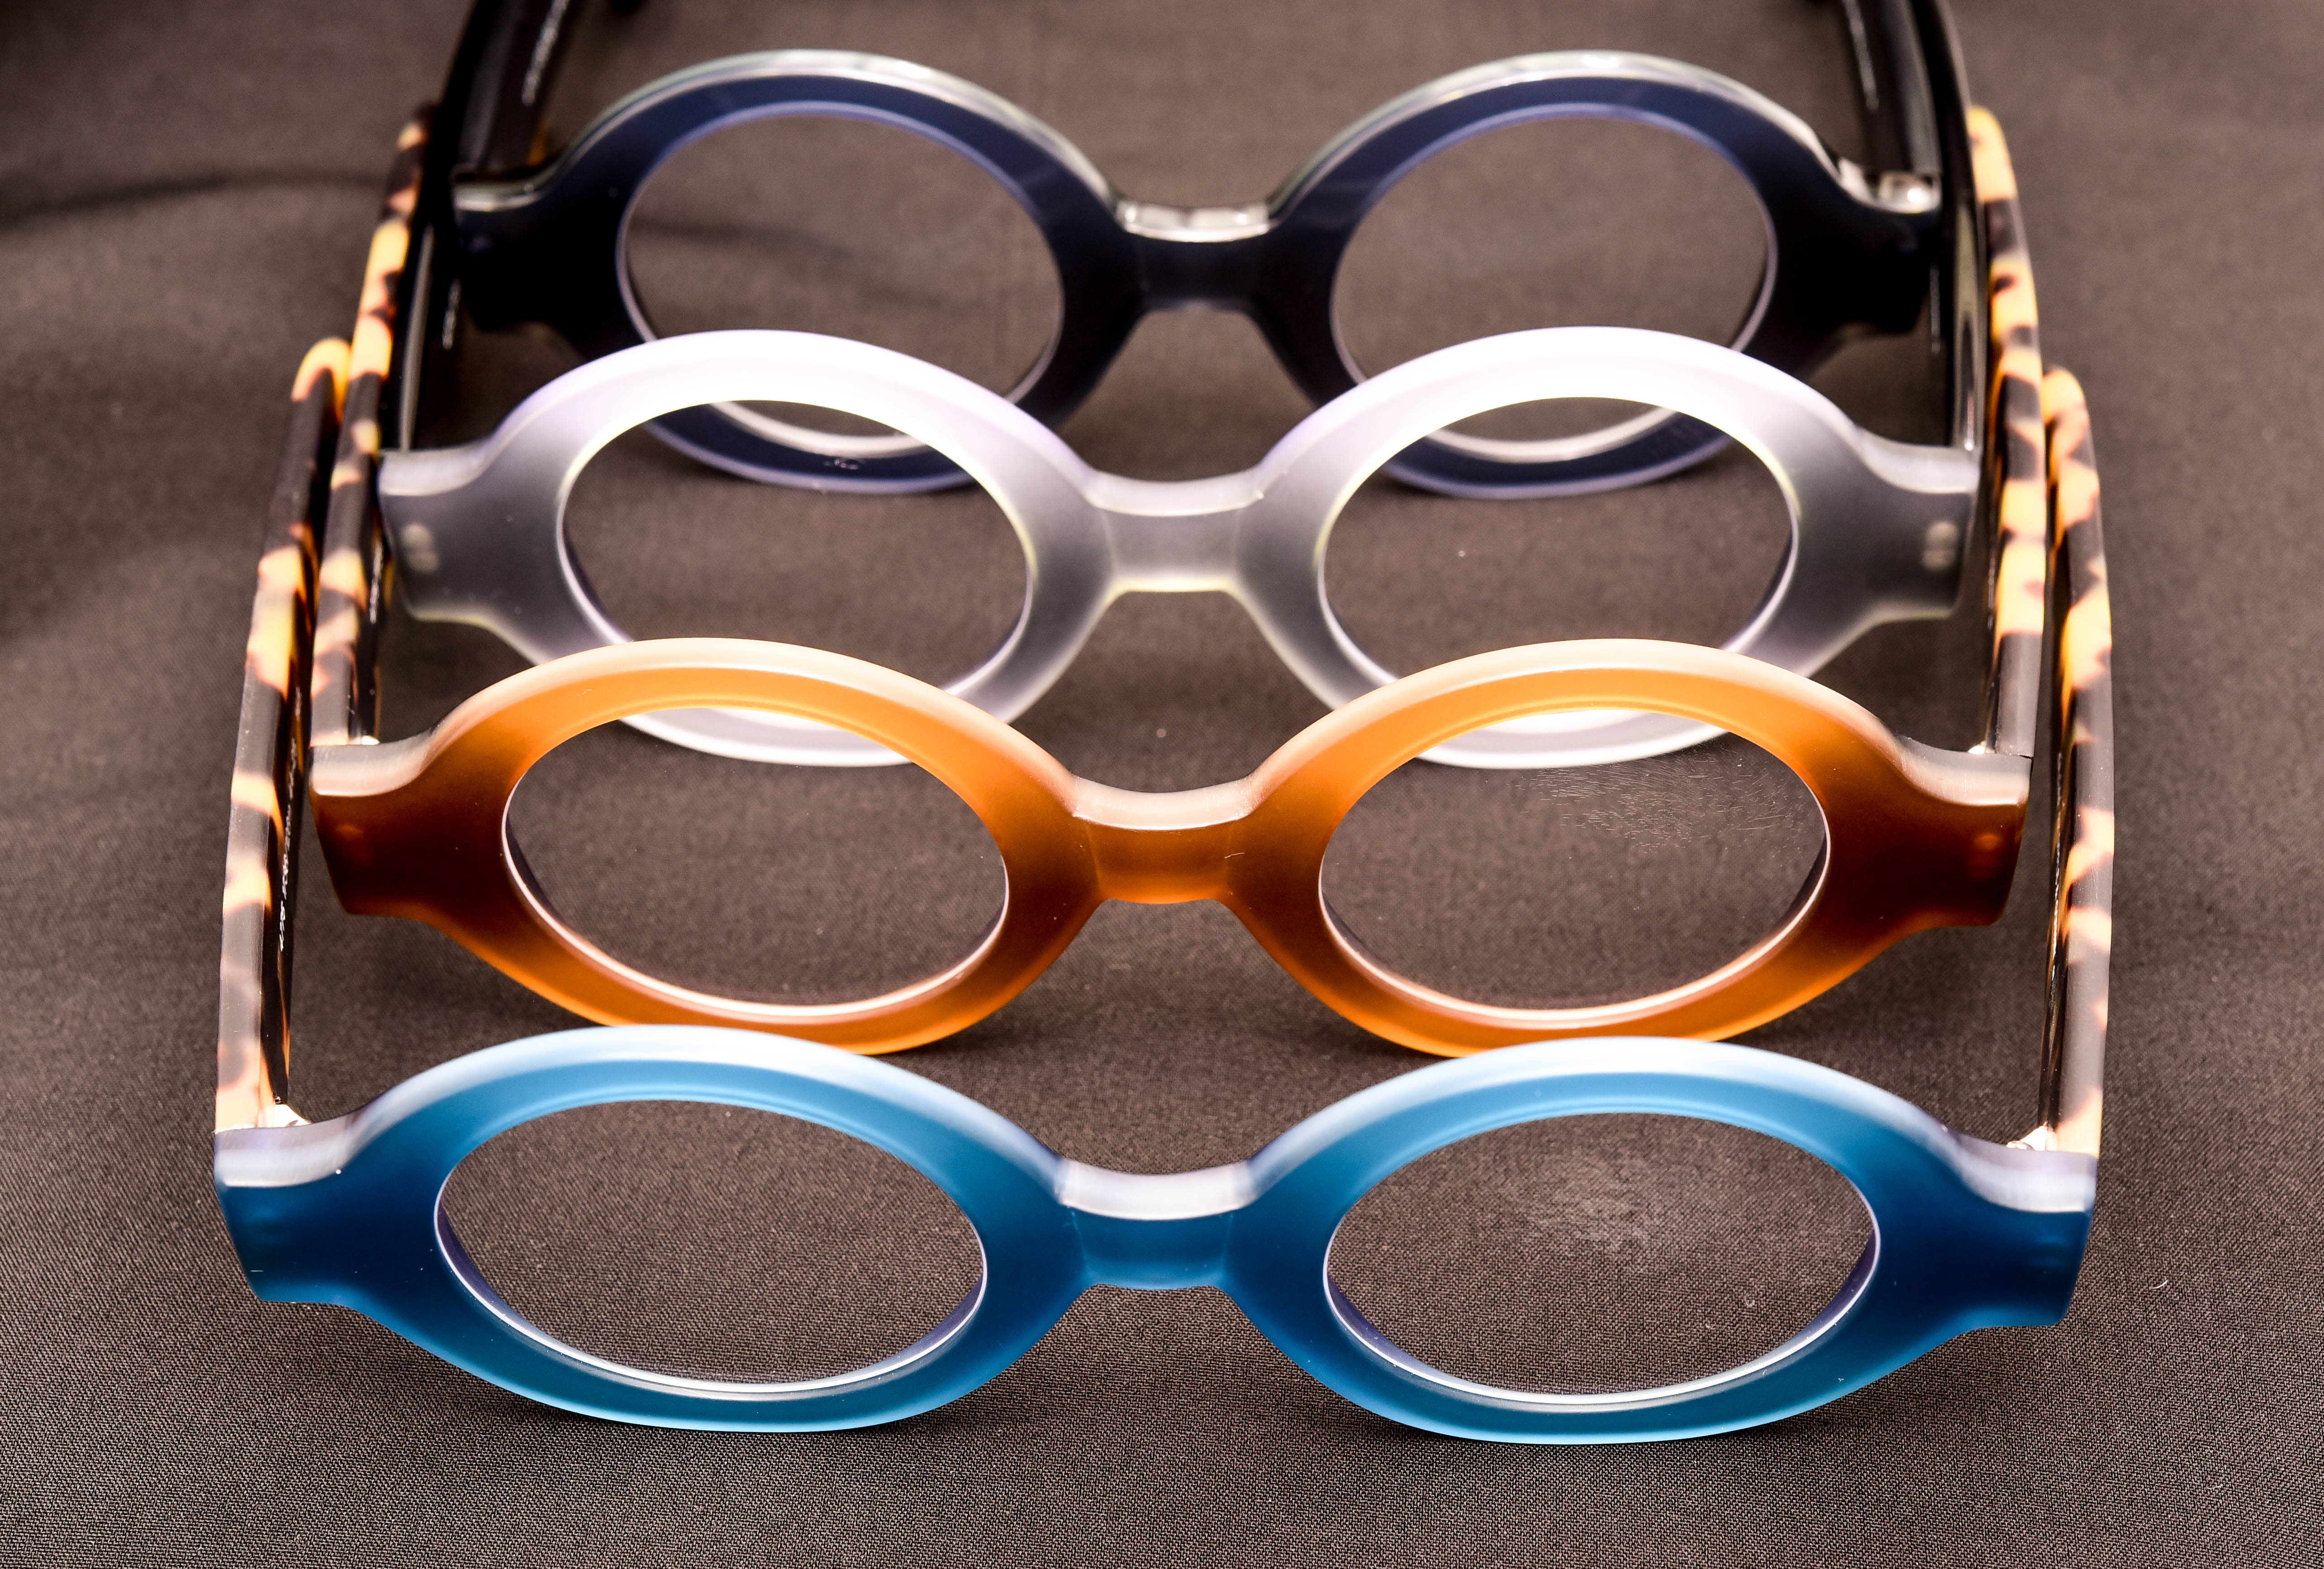 07940154ab At Dipple   Conway we stock a vast range of designer spectacles for men